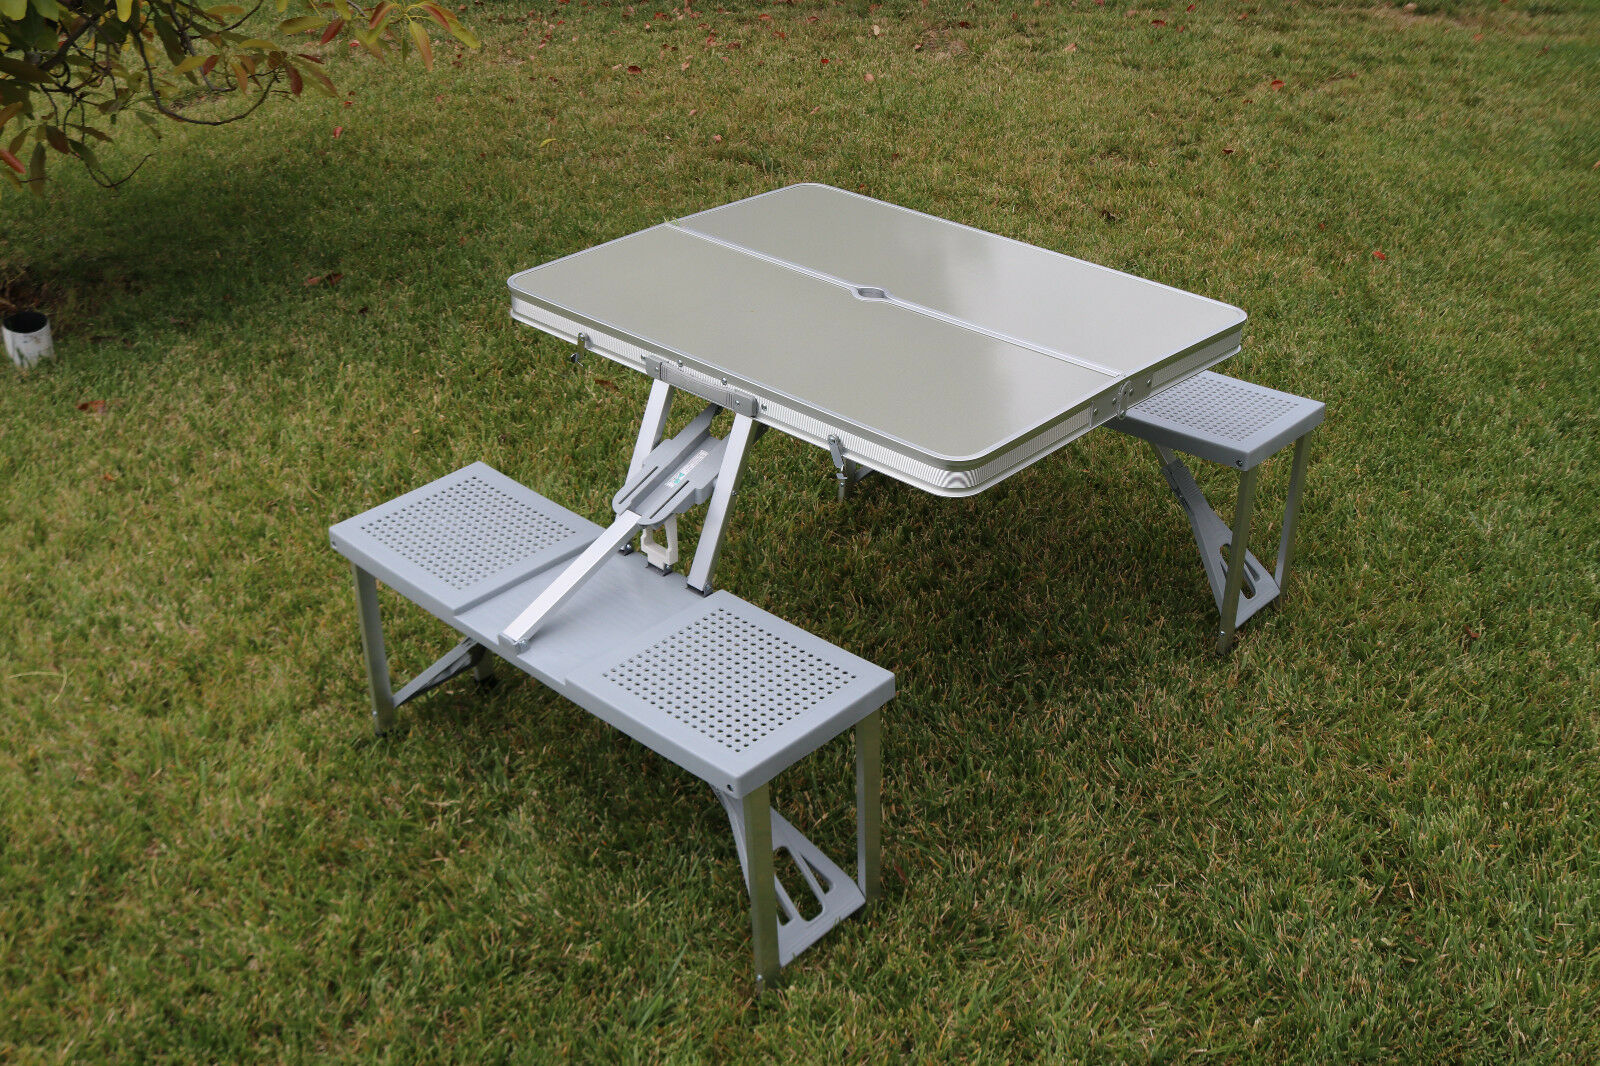 Picnic Time Folding Aluminum Table w Formica Top for Beach or Camping 801-00-133